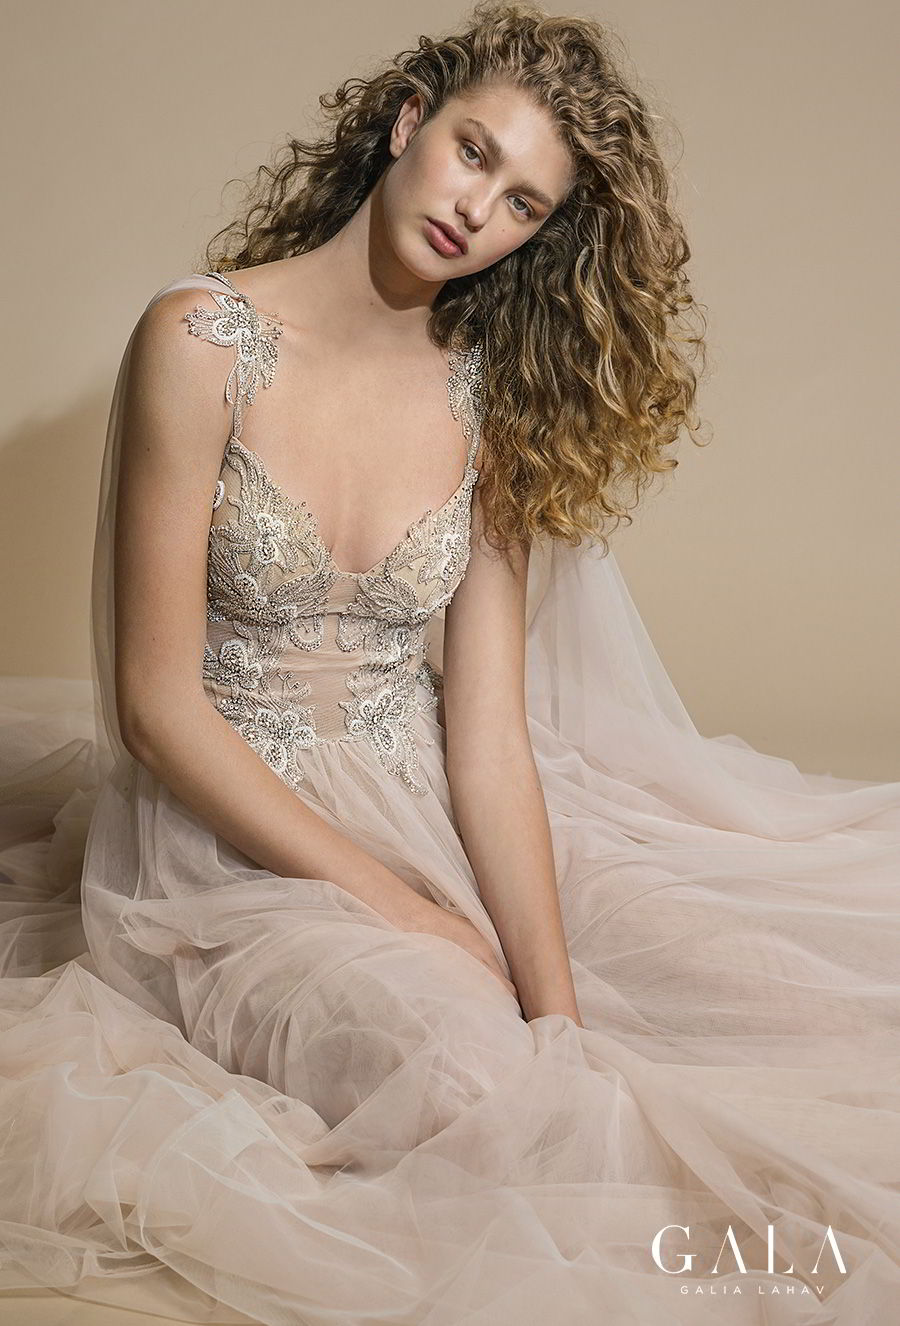 galia lahav gala 2019 bridal sleeveless with strap sweetheart neckline heavily embellished bodice bustier tulle skirt romantic blush a line wedding dress razor back chapel train (111) mv zv